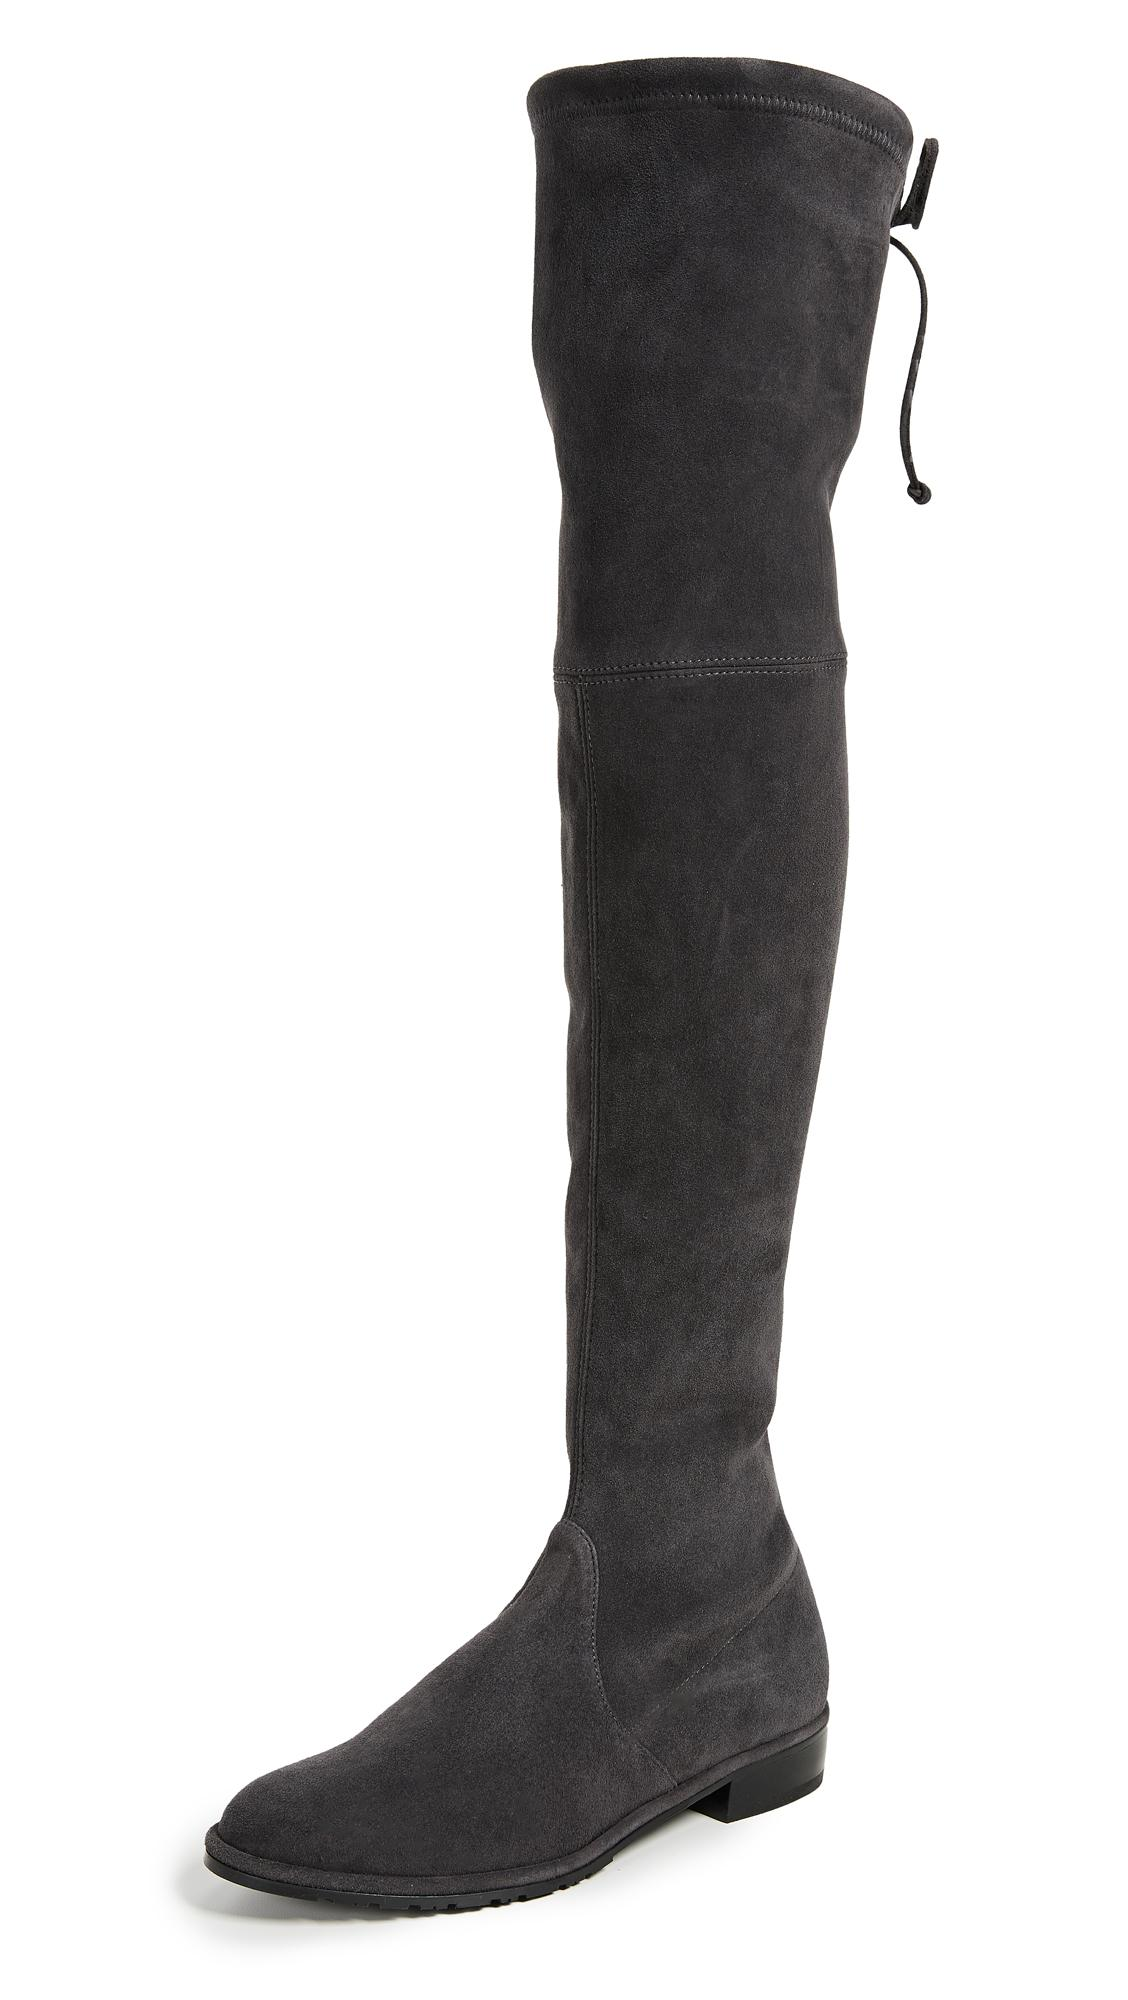 2e2148a4e42 Stuart Weitzman Lowland Over The Knee Boots In Asphalt